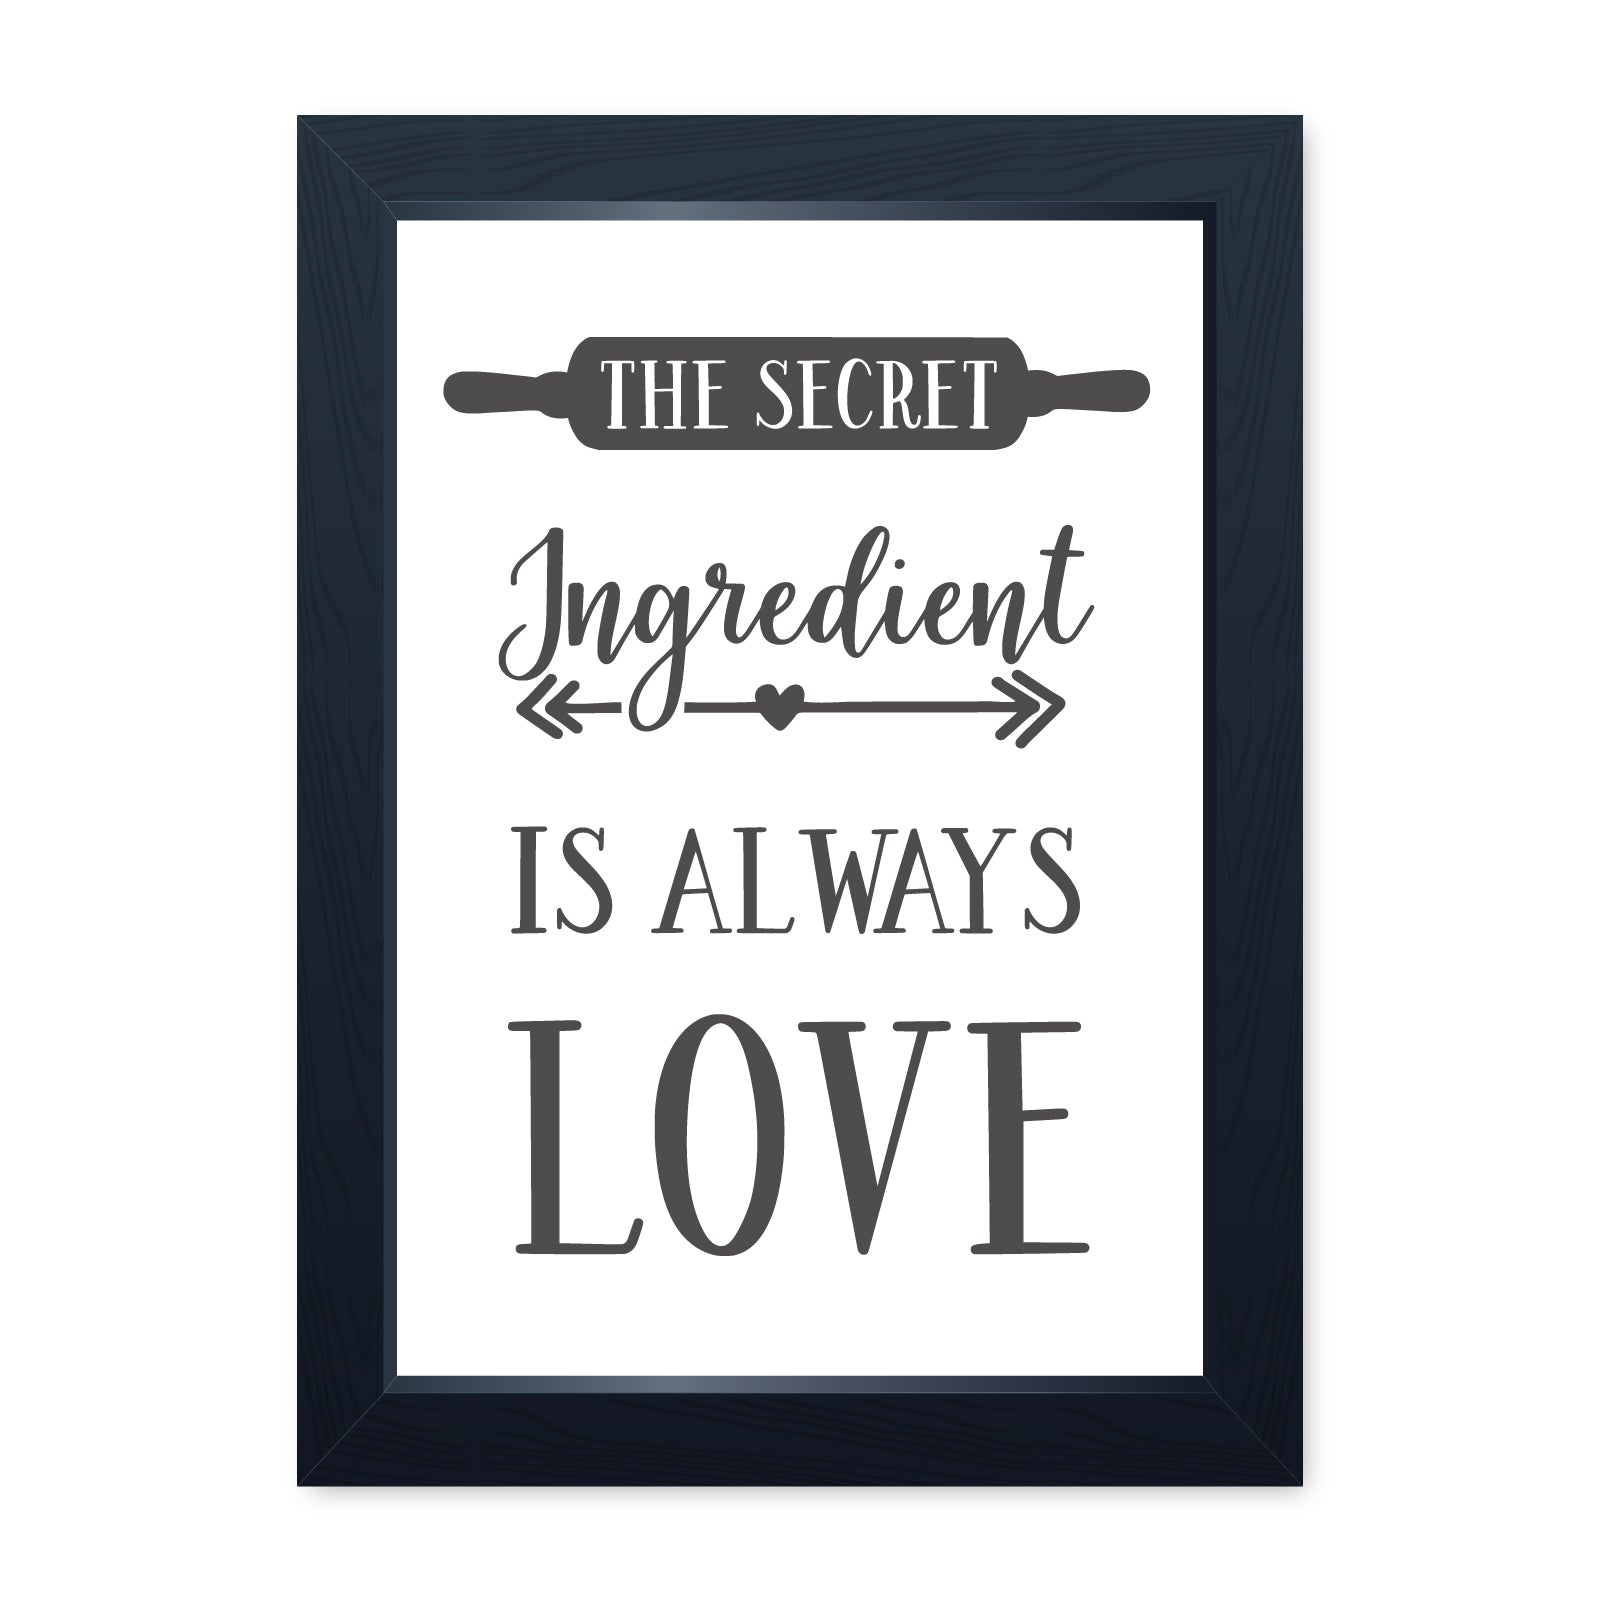 Secret Ingredient Is Love, Quality Framed Print - Home Kitchen Dining Cafe GBBO